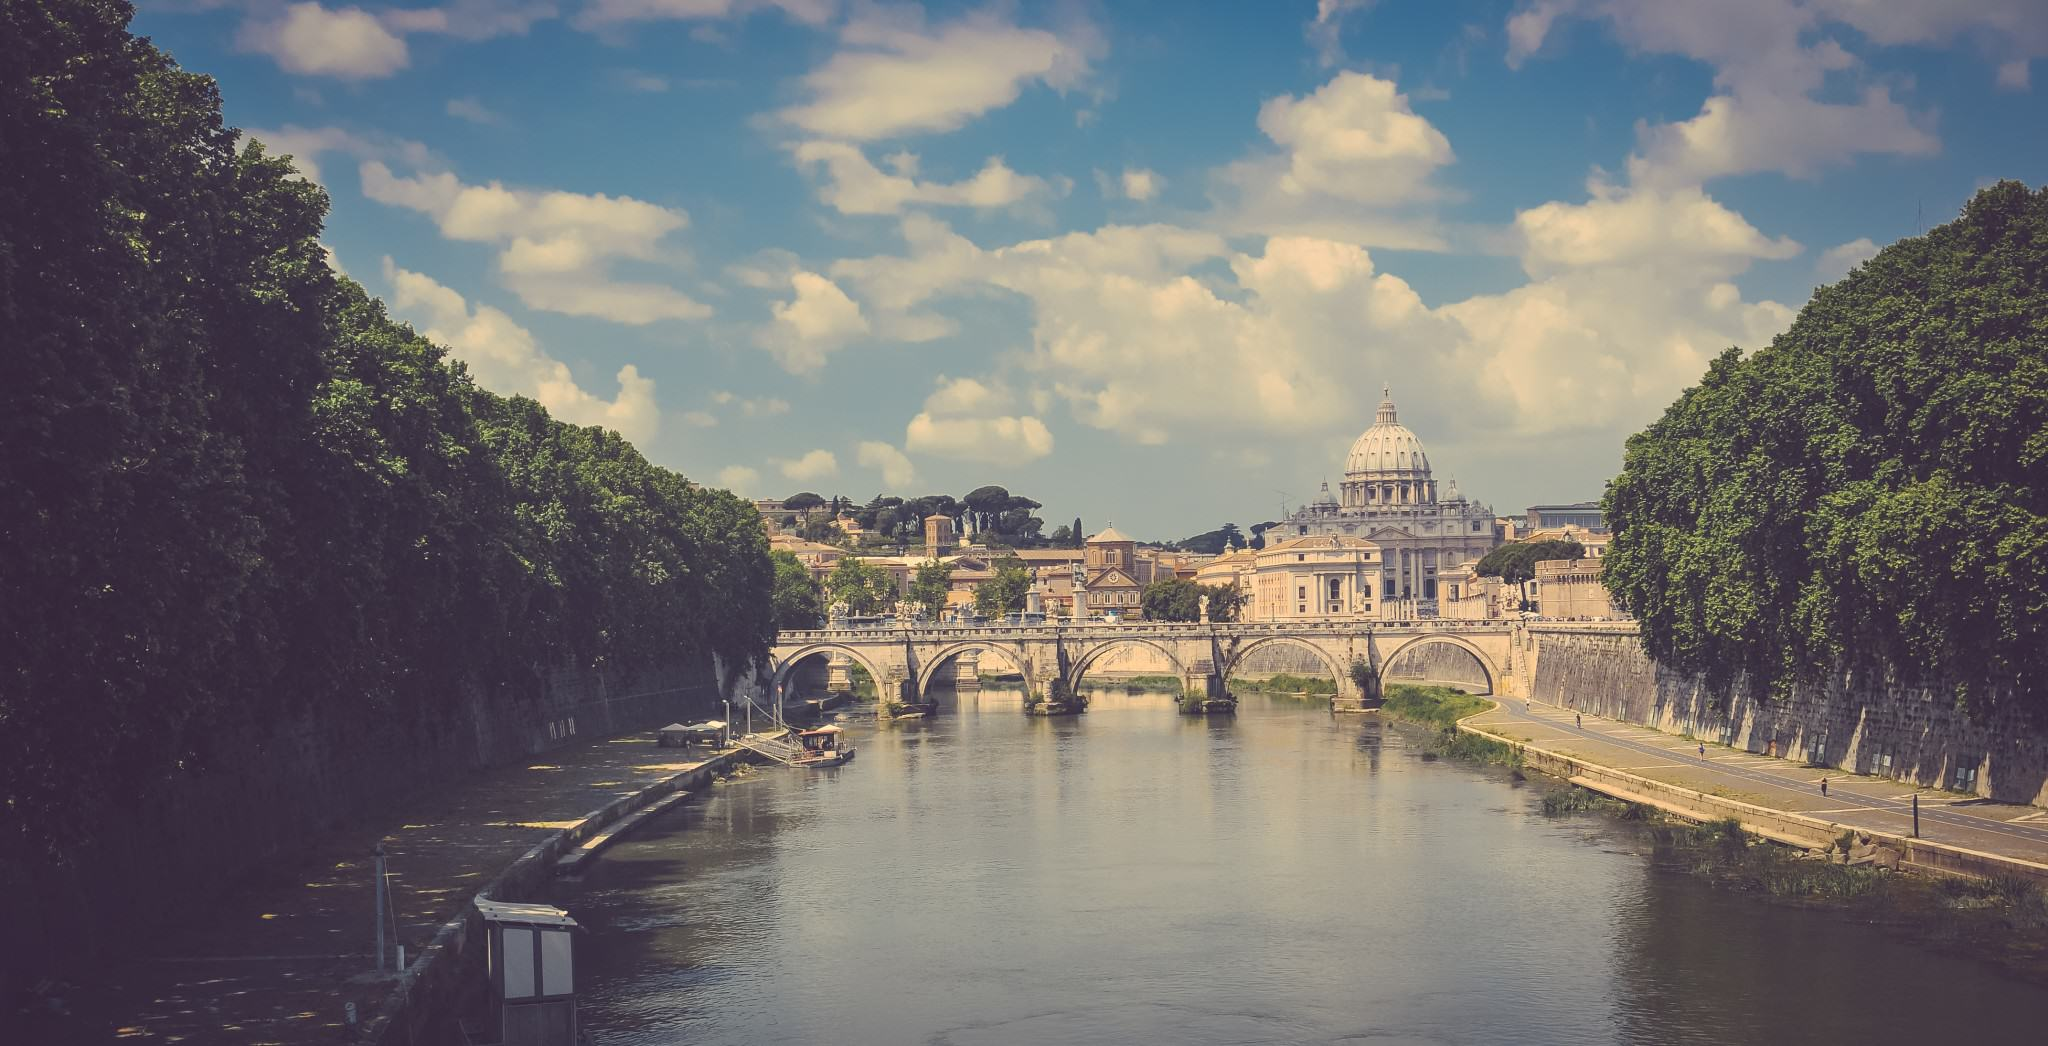 City View Of Rome With River